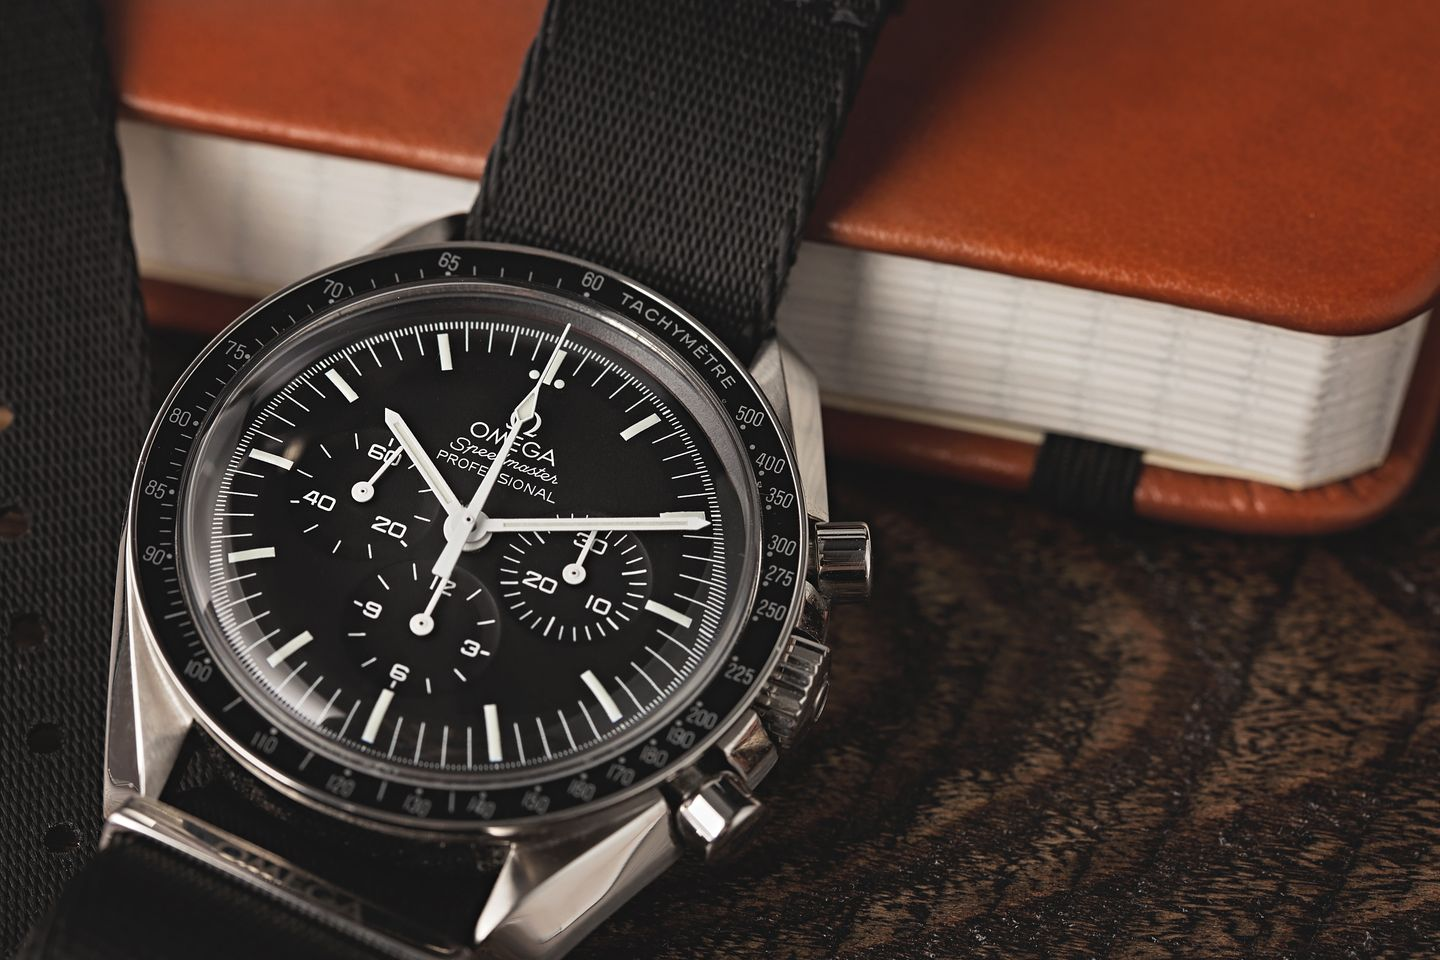 Omega Speedmaster Moonwatch versus Speedmaster '57 Co-Axial Comparison guide